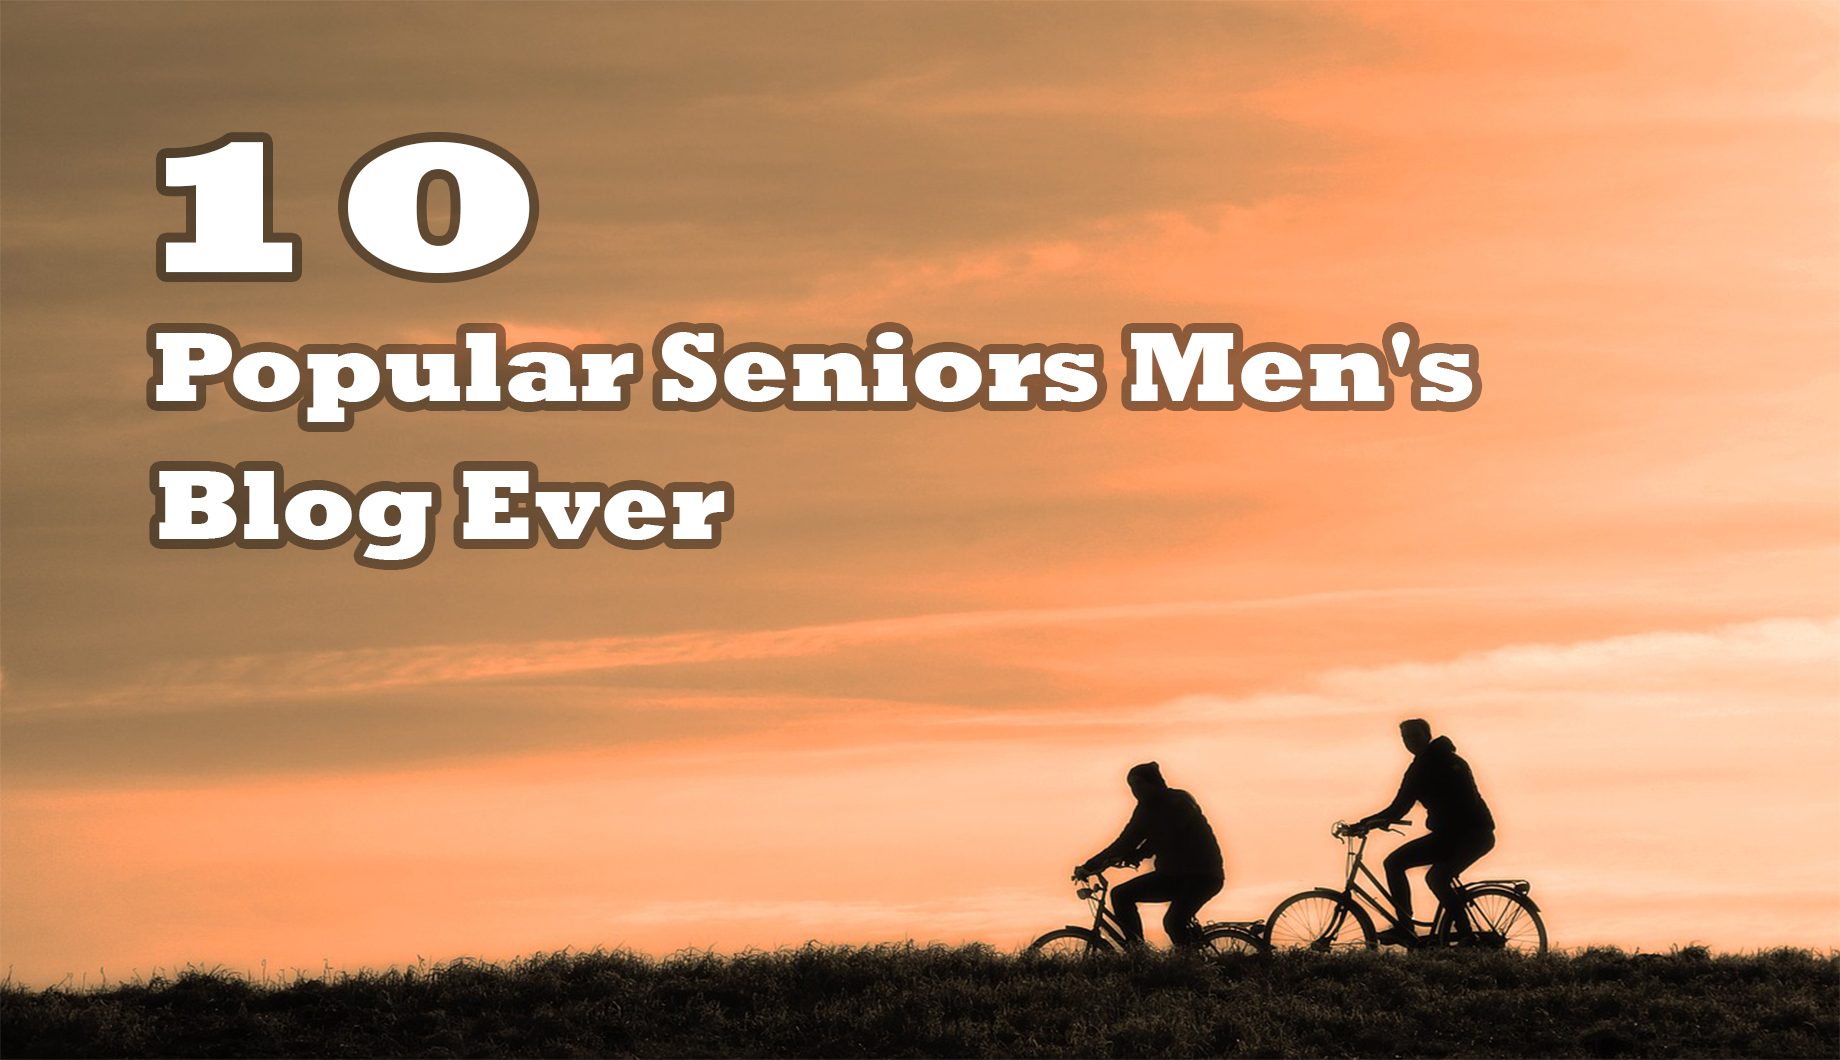 Popular Seniors Men's Blog Ever